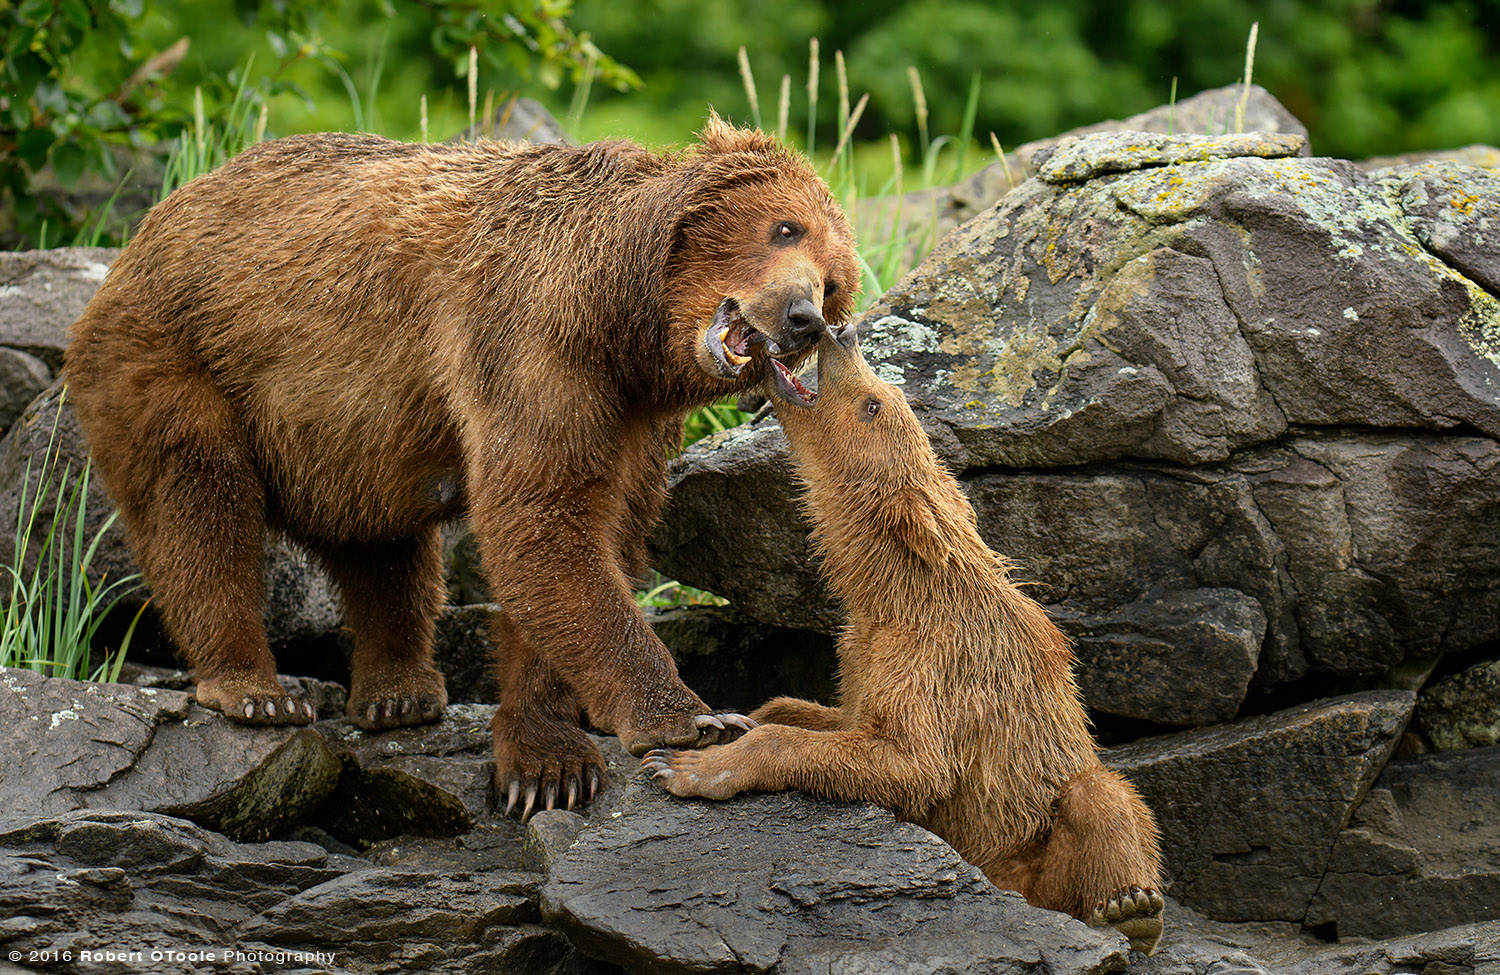 Bear Mother Playing with Cub on the Rocks